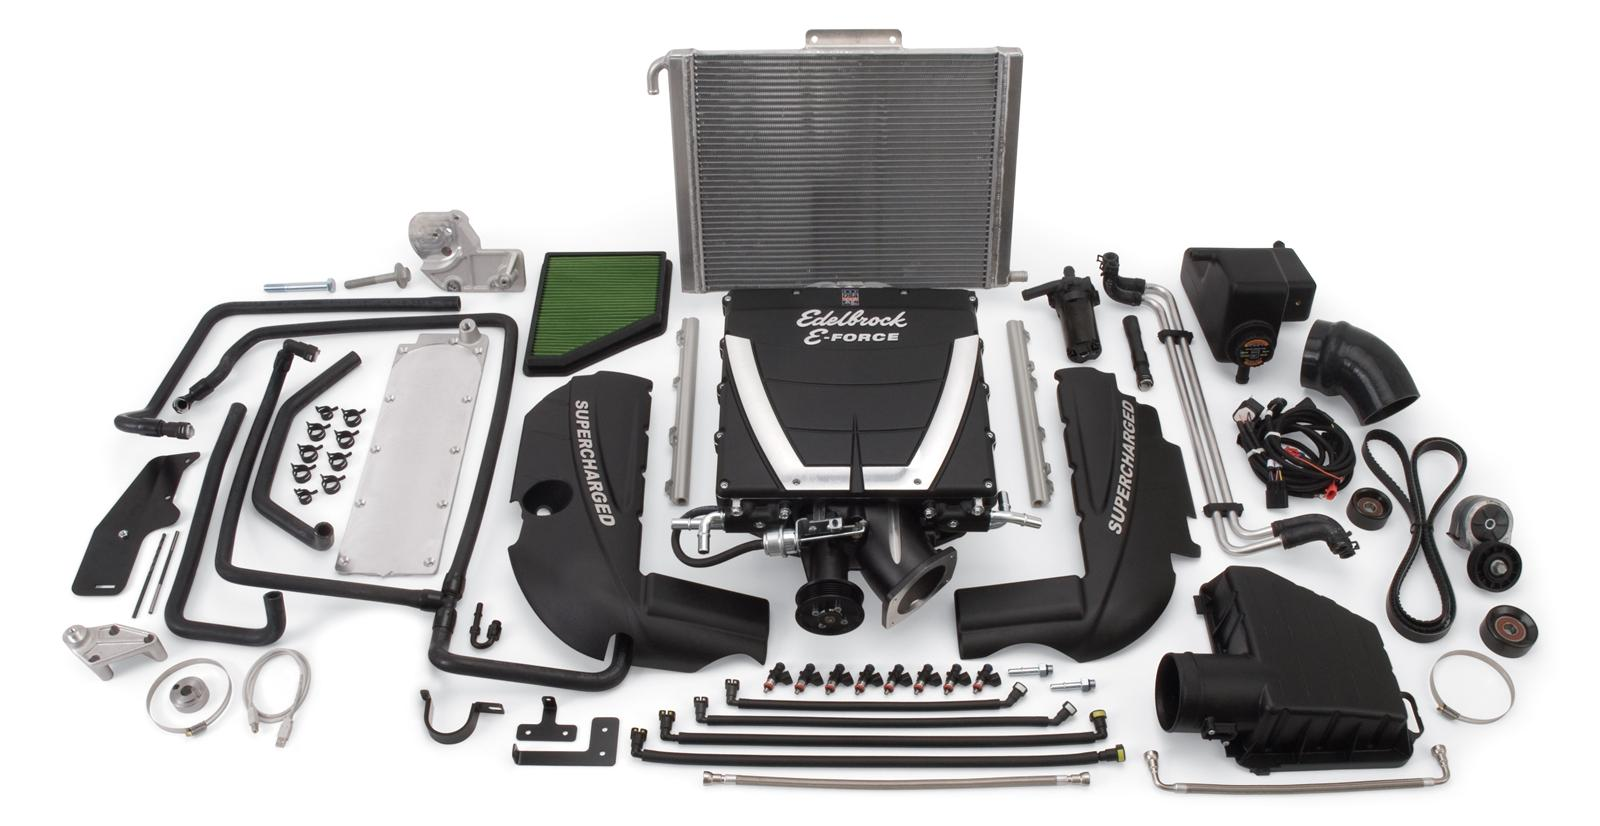 Edelbrock E-Force Universal Supercharger Systems for Engine Swaps 15450